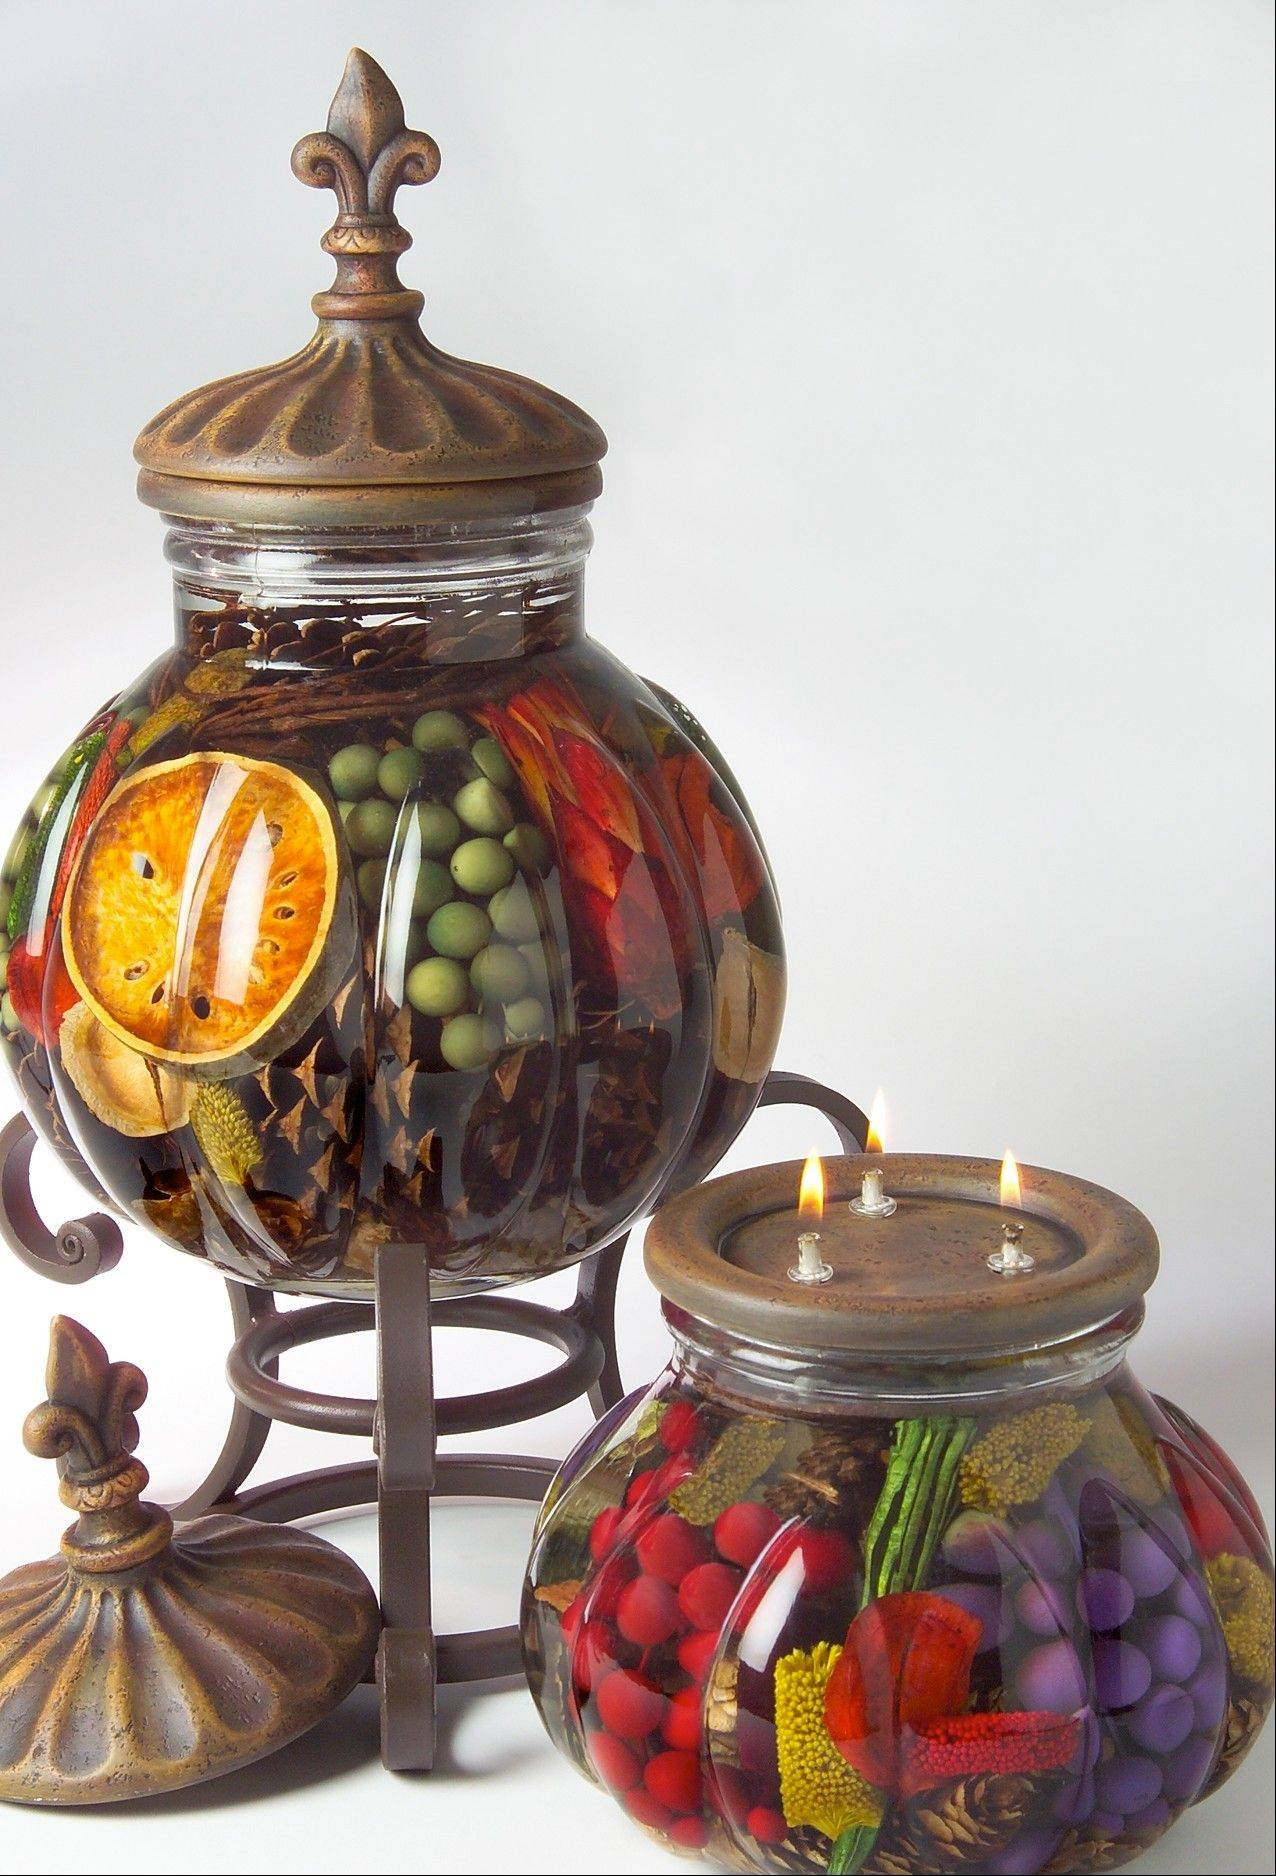 Lifetime candles are actually clear paraffin oil lamps filled with decorative flowers, berries, greens, fruits or vegetables.